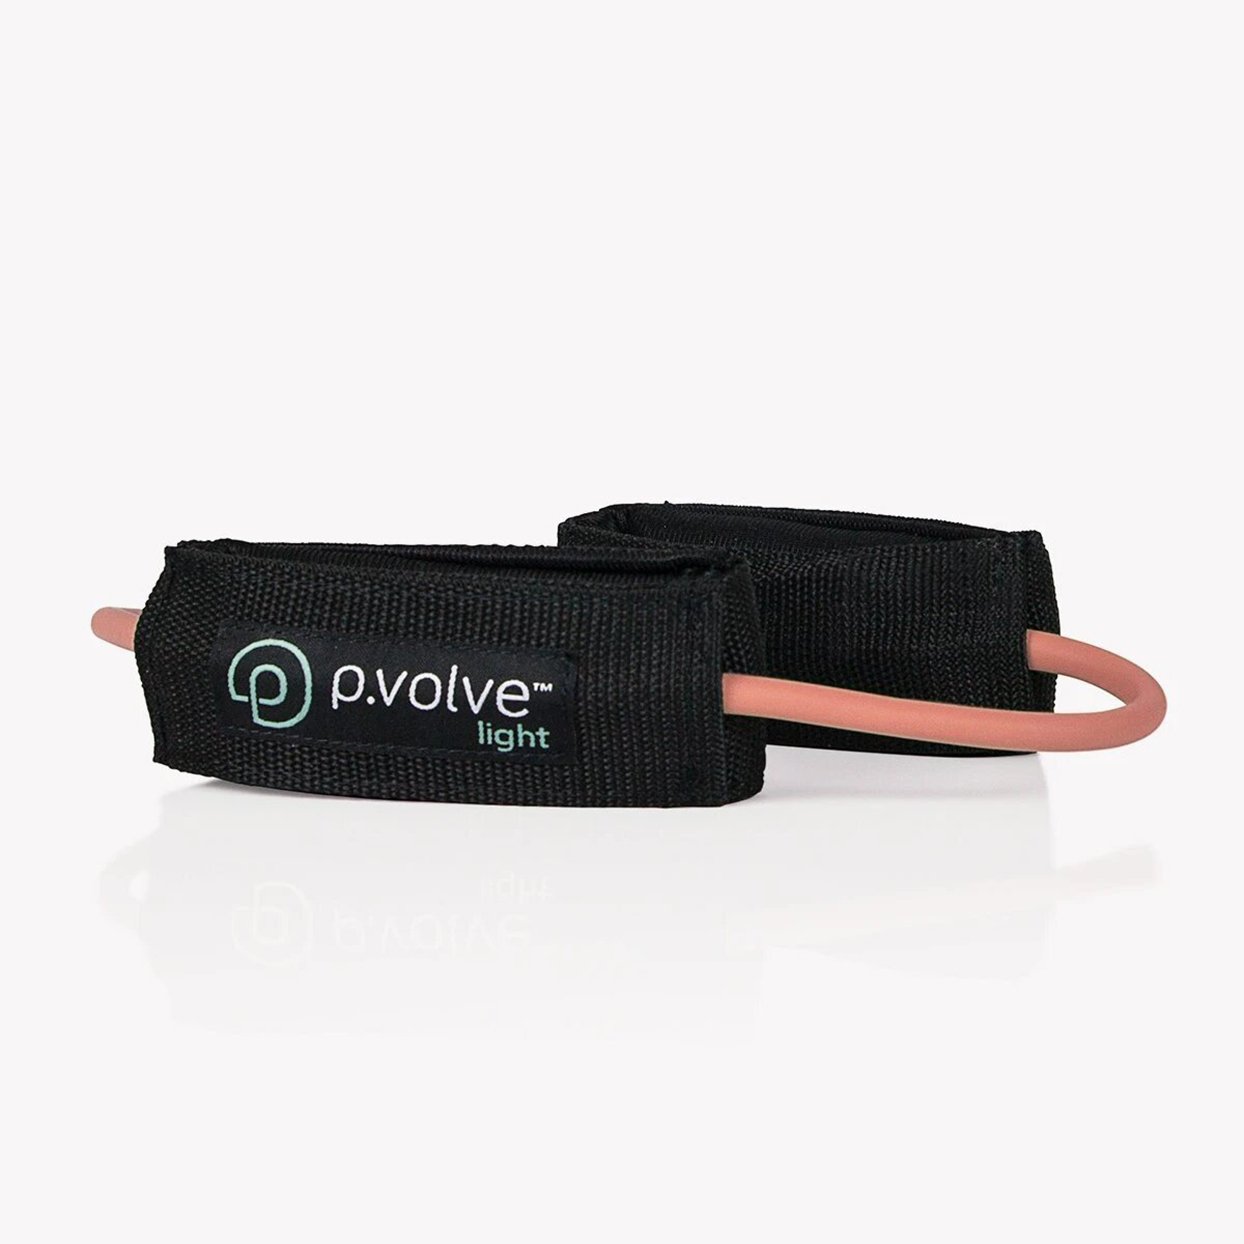 P.volve ankle bands